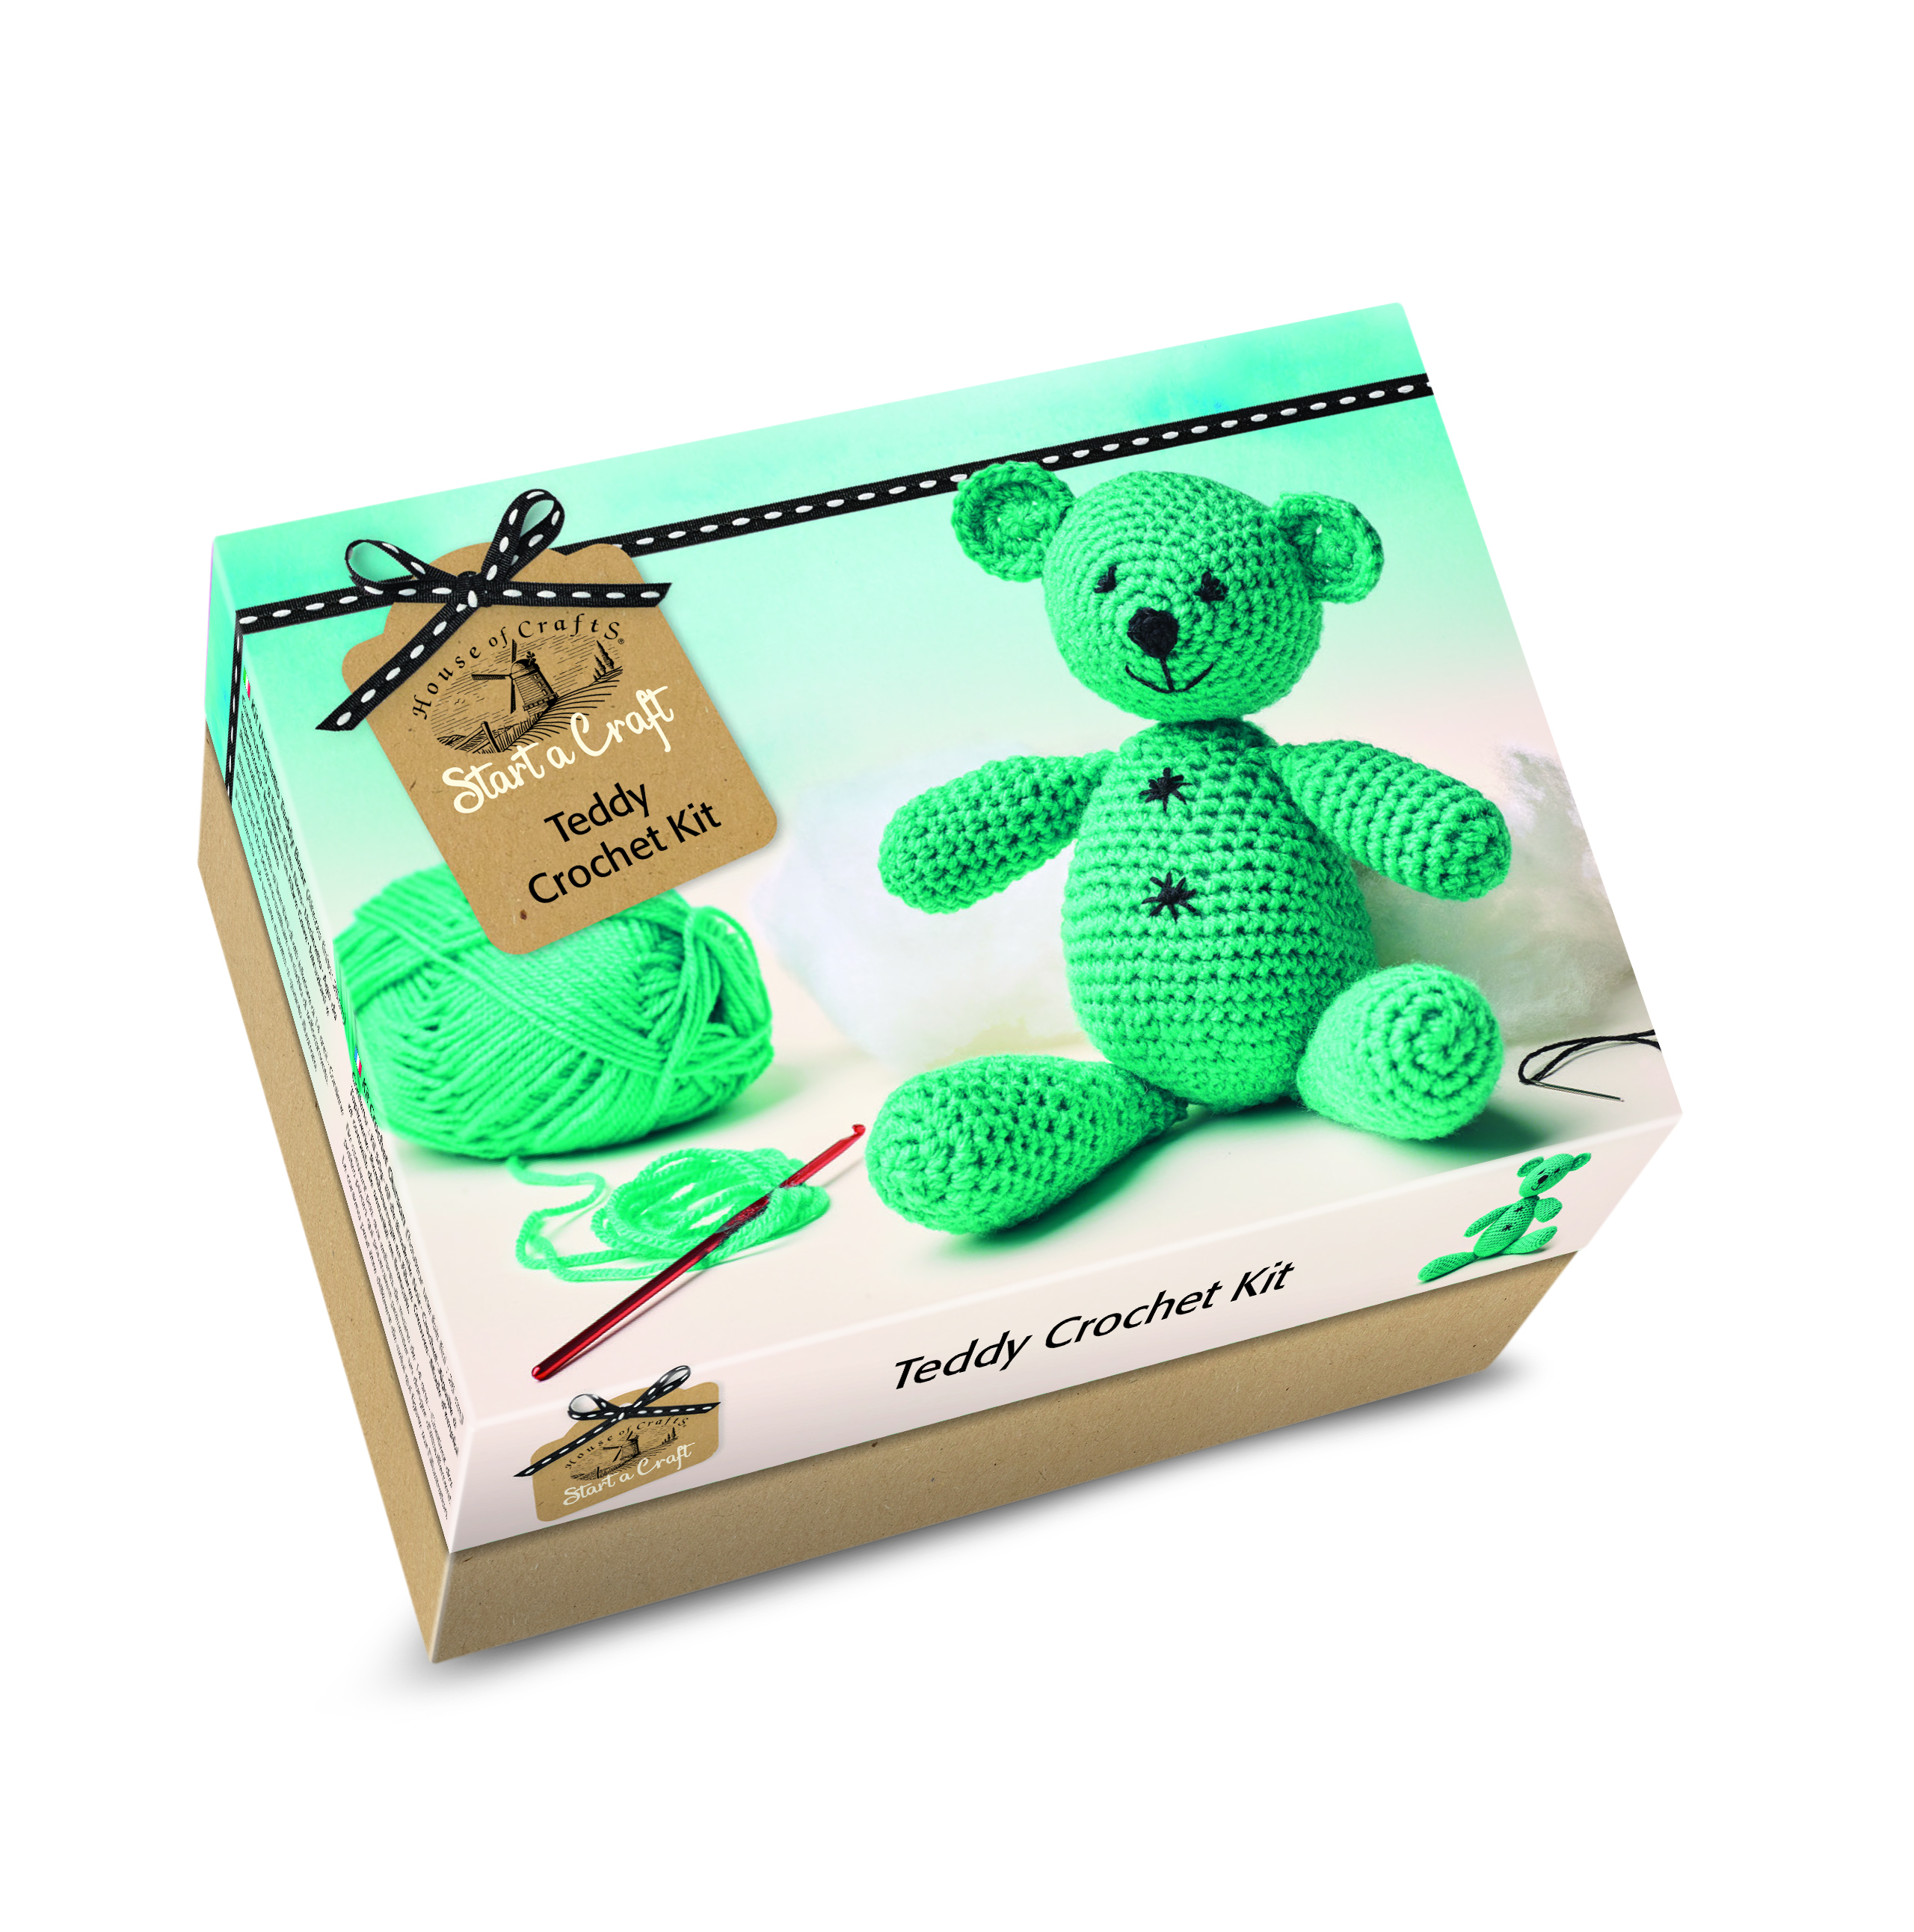 HOUSE OF CRAFTS TEDDY  CROCHET KIT SC040